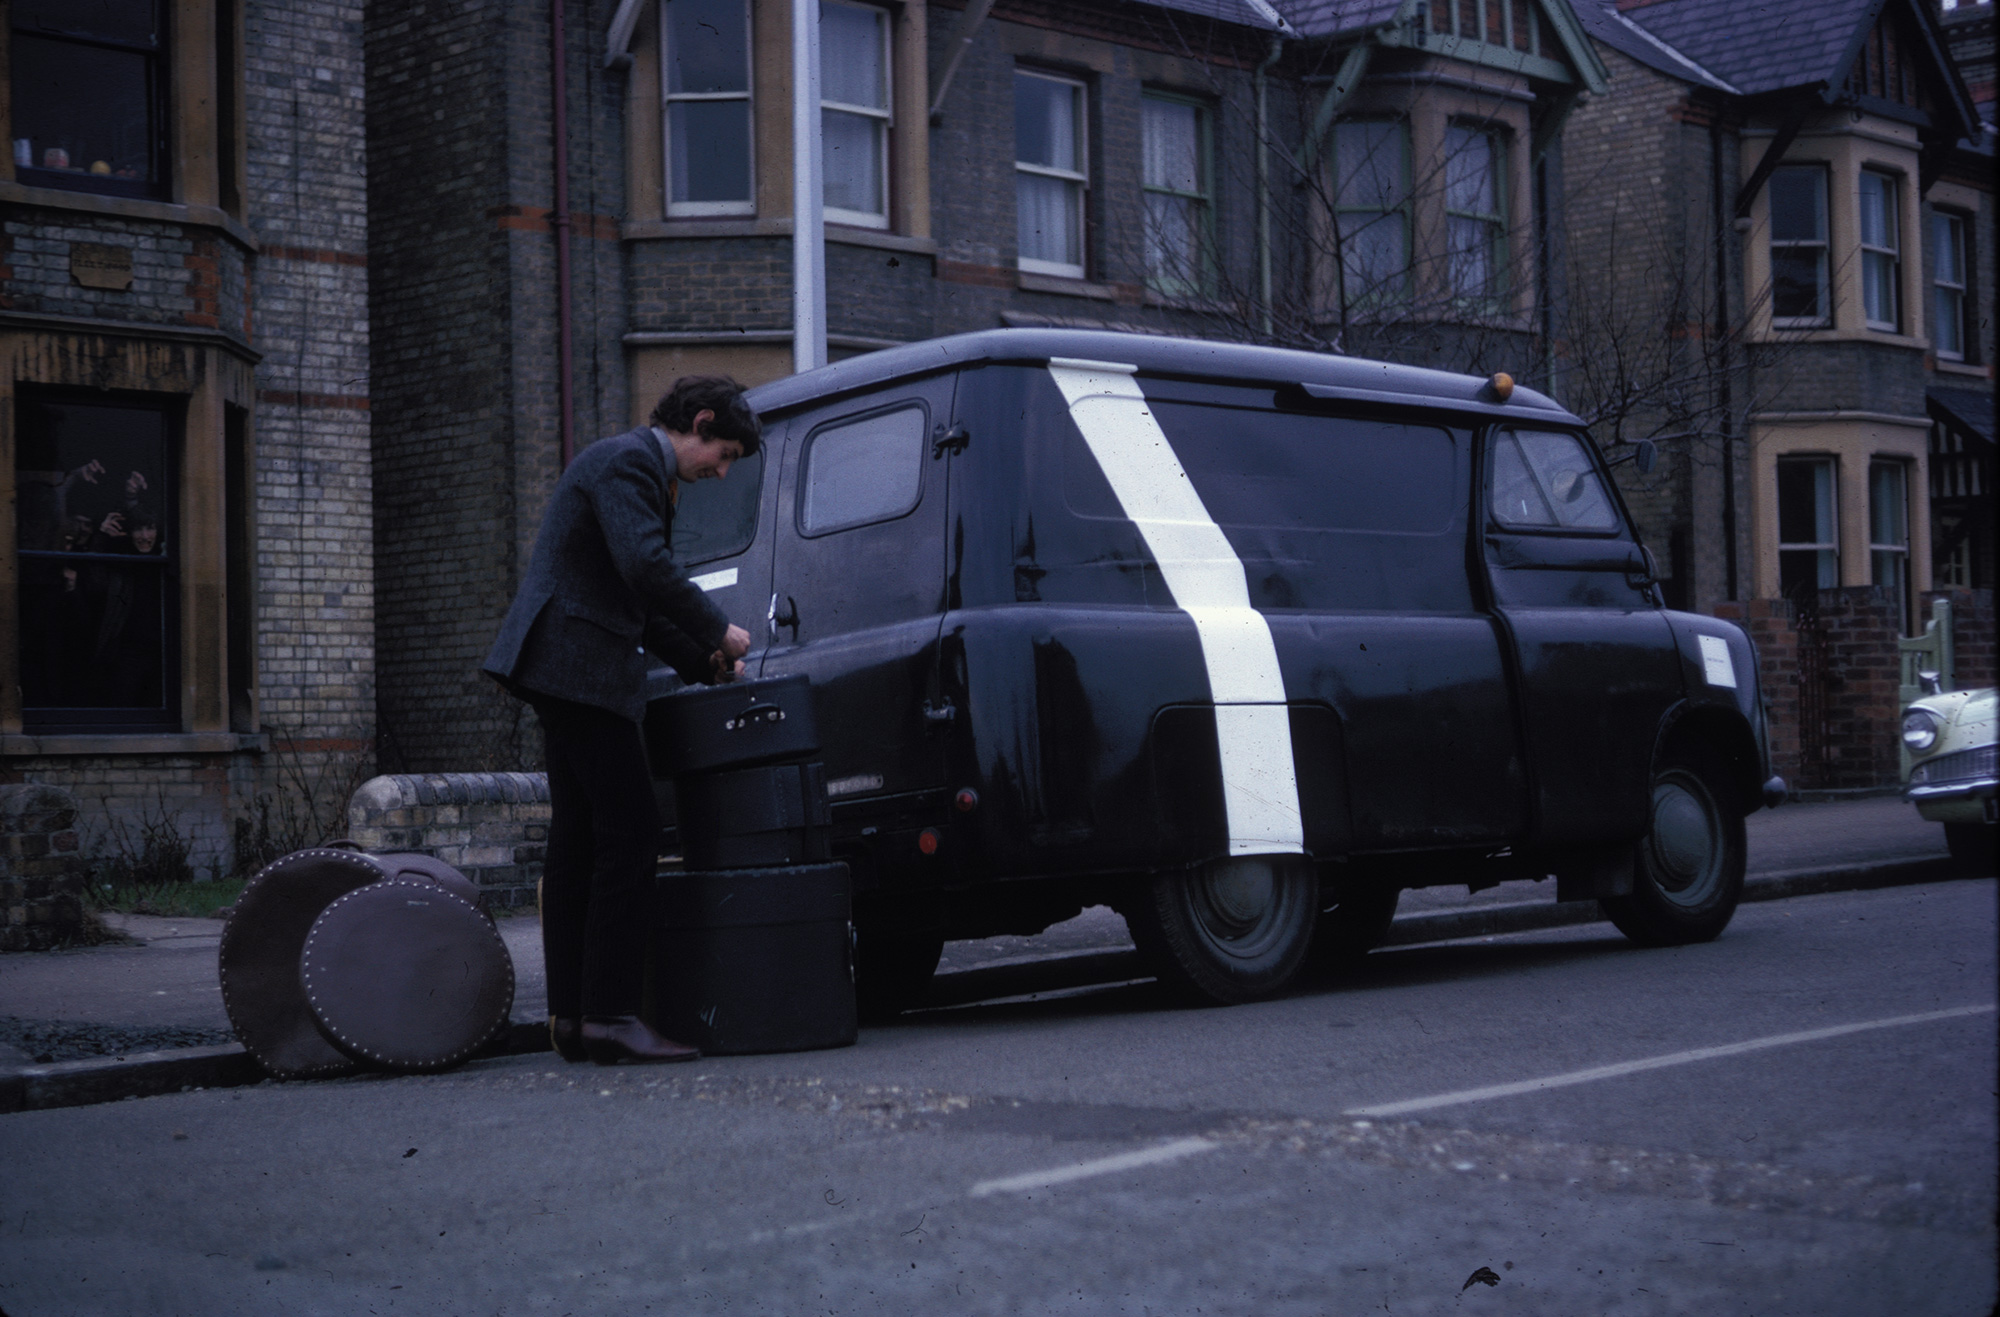 Nick Mason loading his drum kit into the Bedford van in 1965 on Rock Road, Cambridge. Image: Pink Floyd Archive